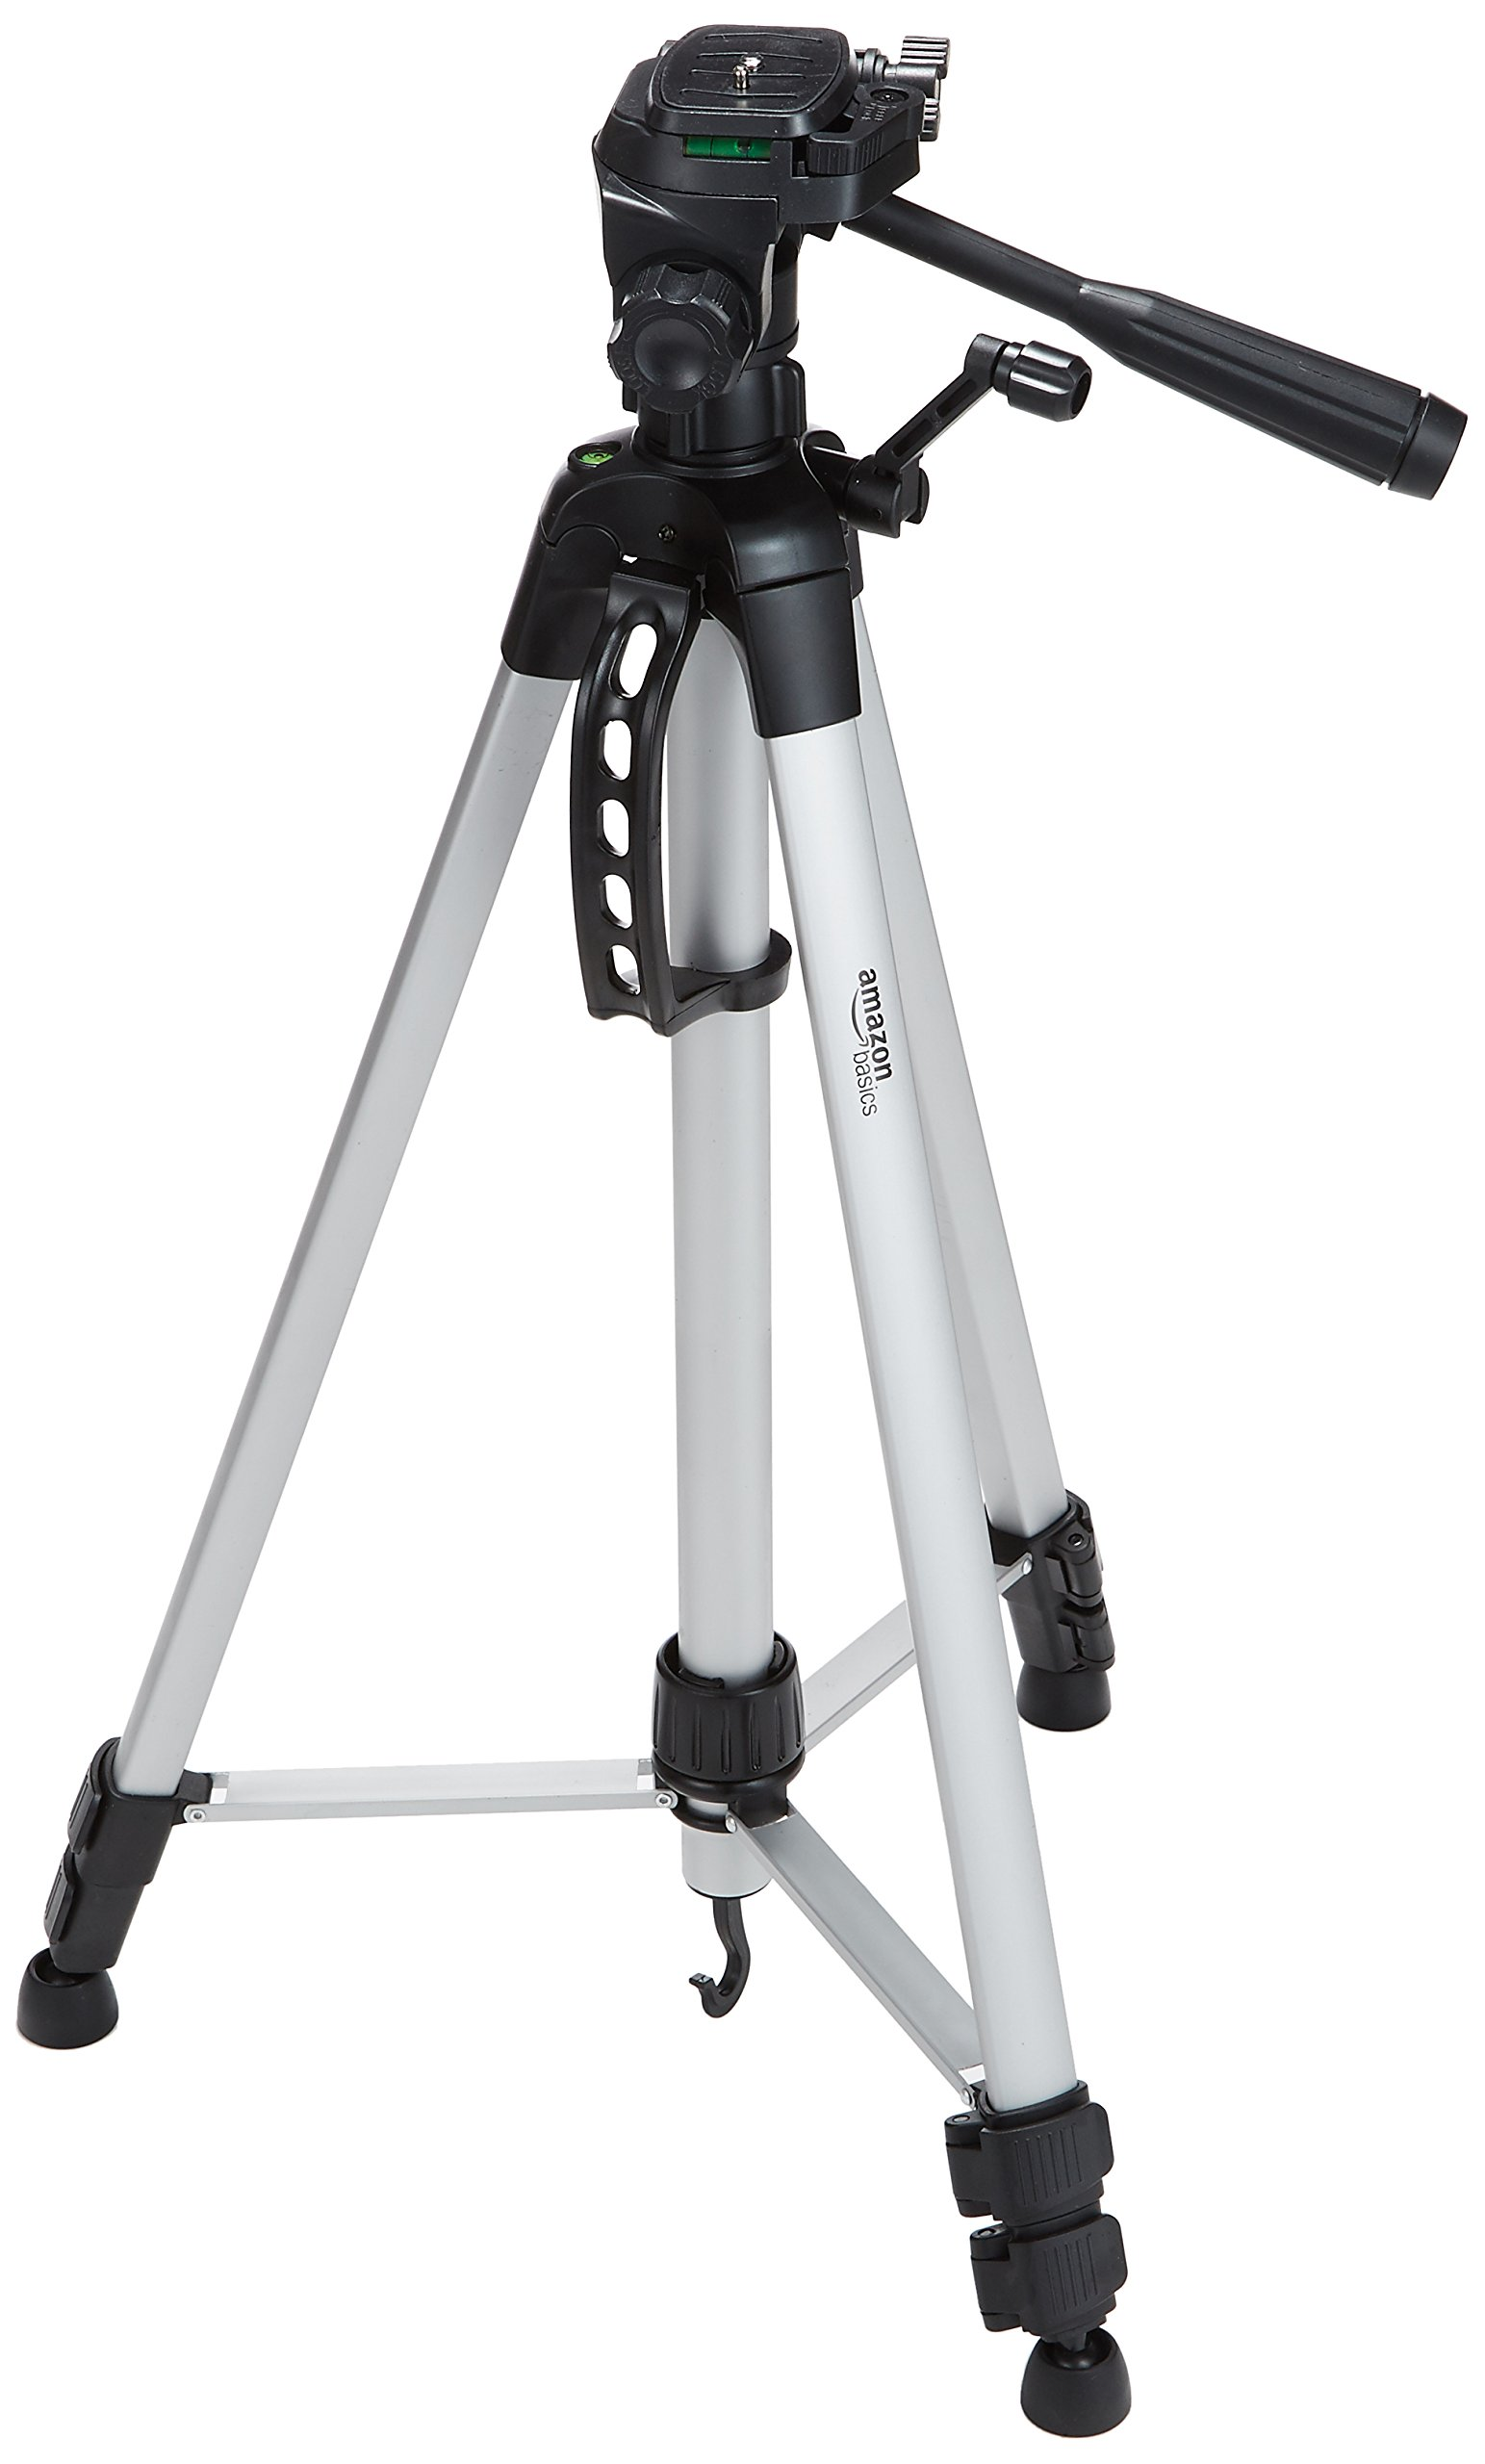 AmazonBasics 60-Inch Lightweight Tripod with Bag, 2-Pack